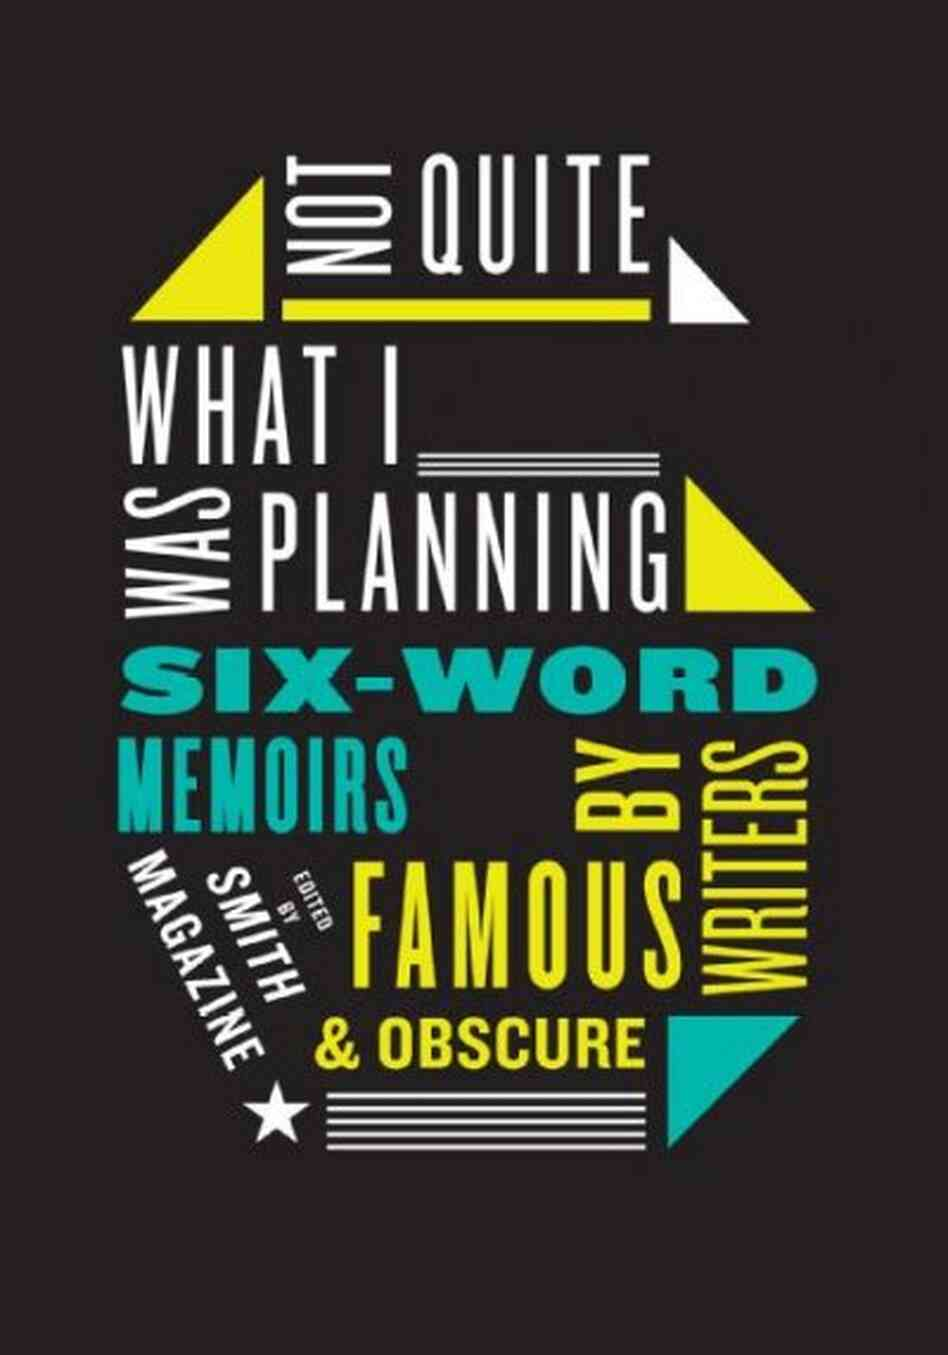 Not Quite What I Was Planning: Six-Word Memoirs Writers Famous and Obscure